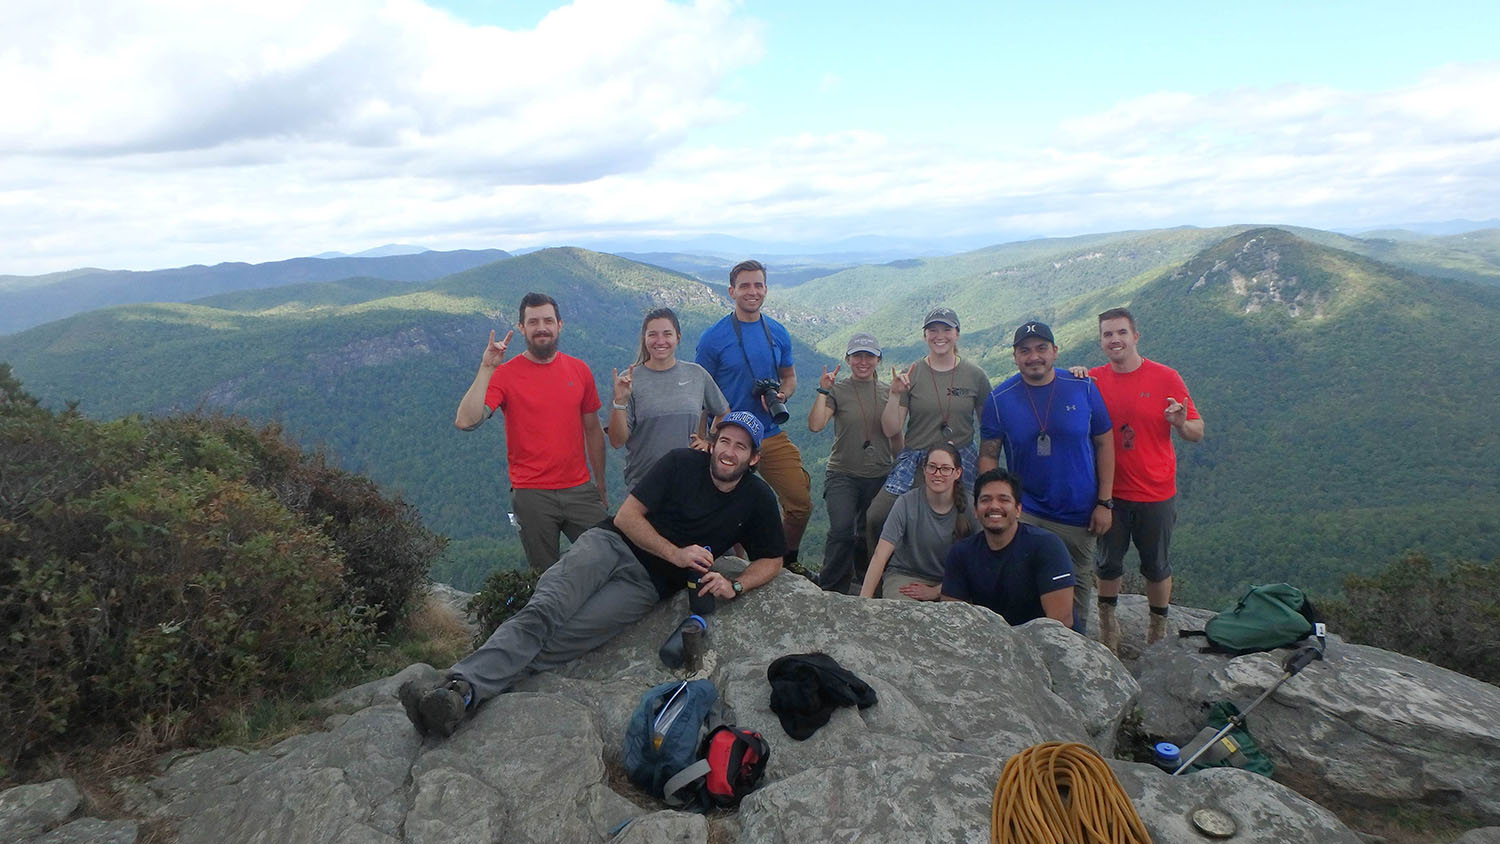 Veterans celebrate scaling a local mountain